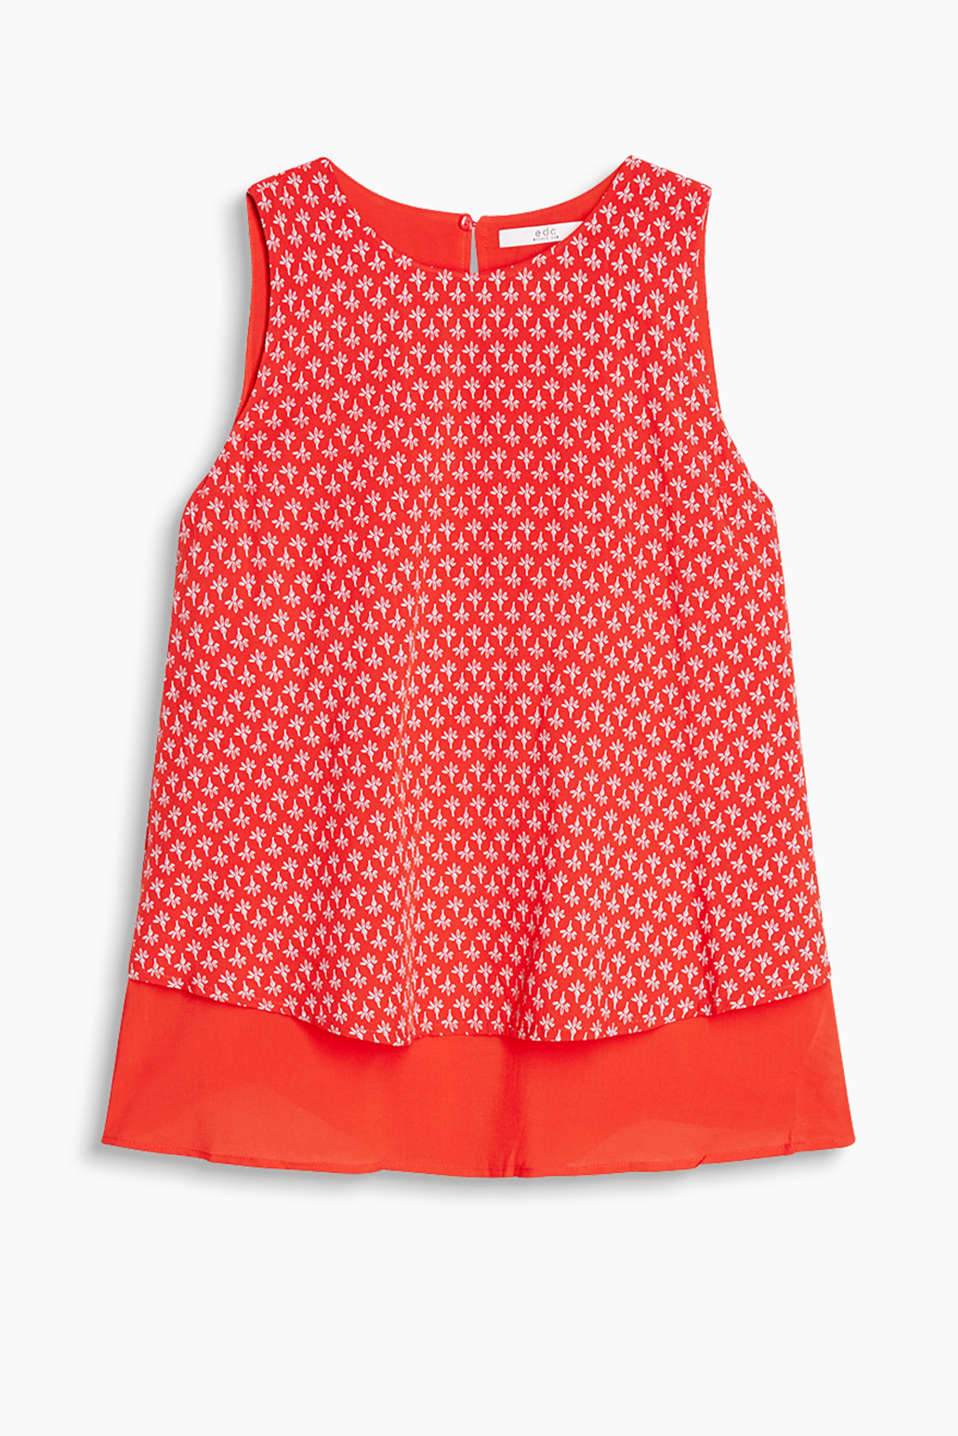 with a polka dot top and plain coloured layering.